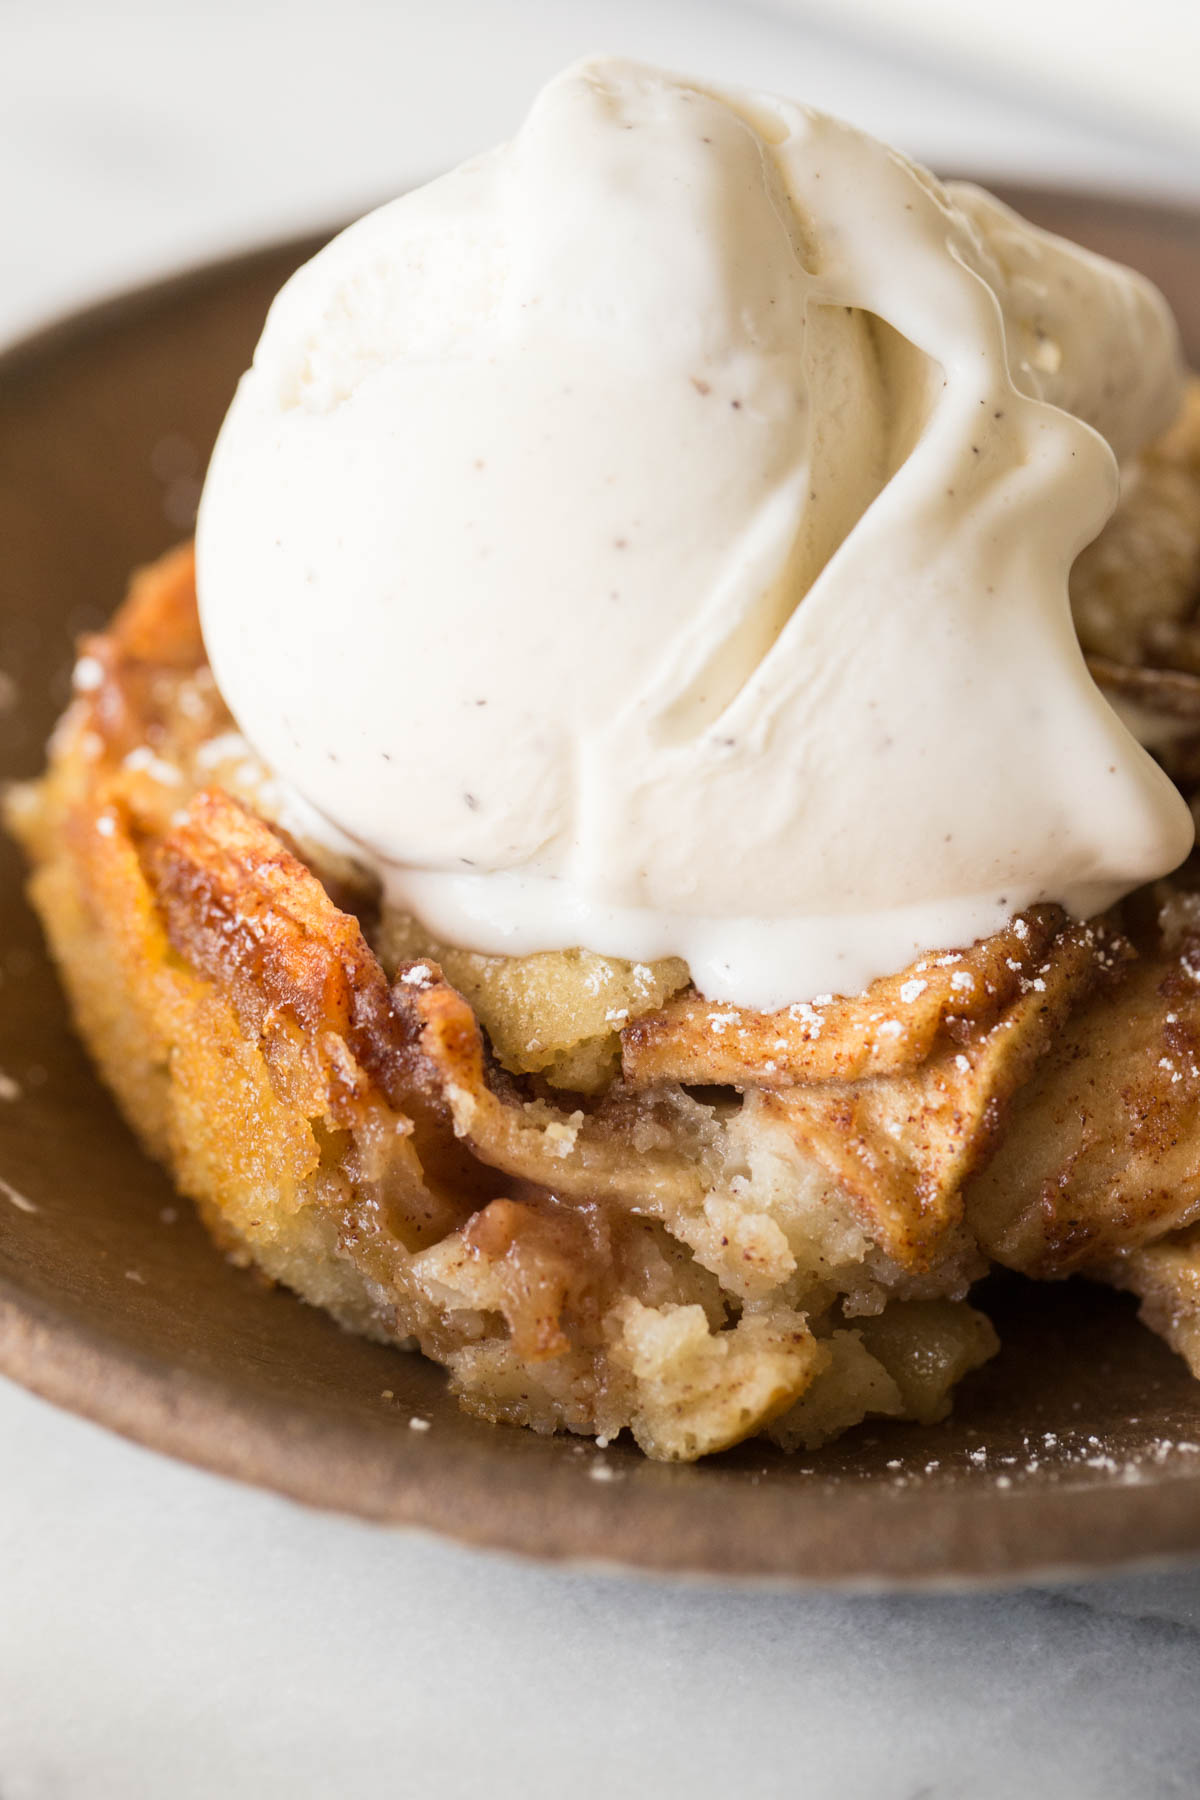 Close up view of bowl full of Apple Cobbler with a scoop of vanilla ice cream on top.